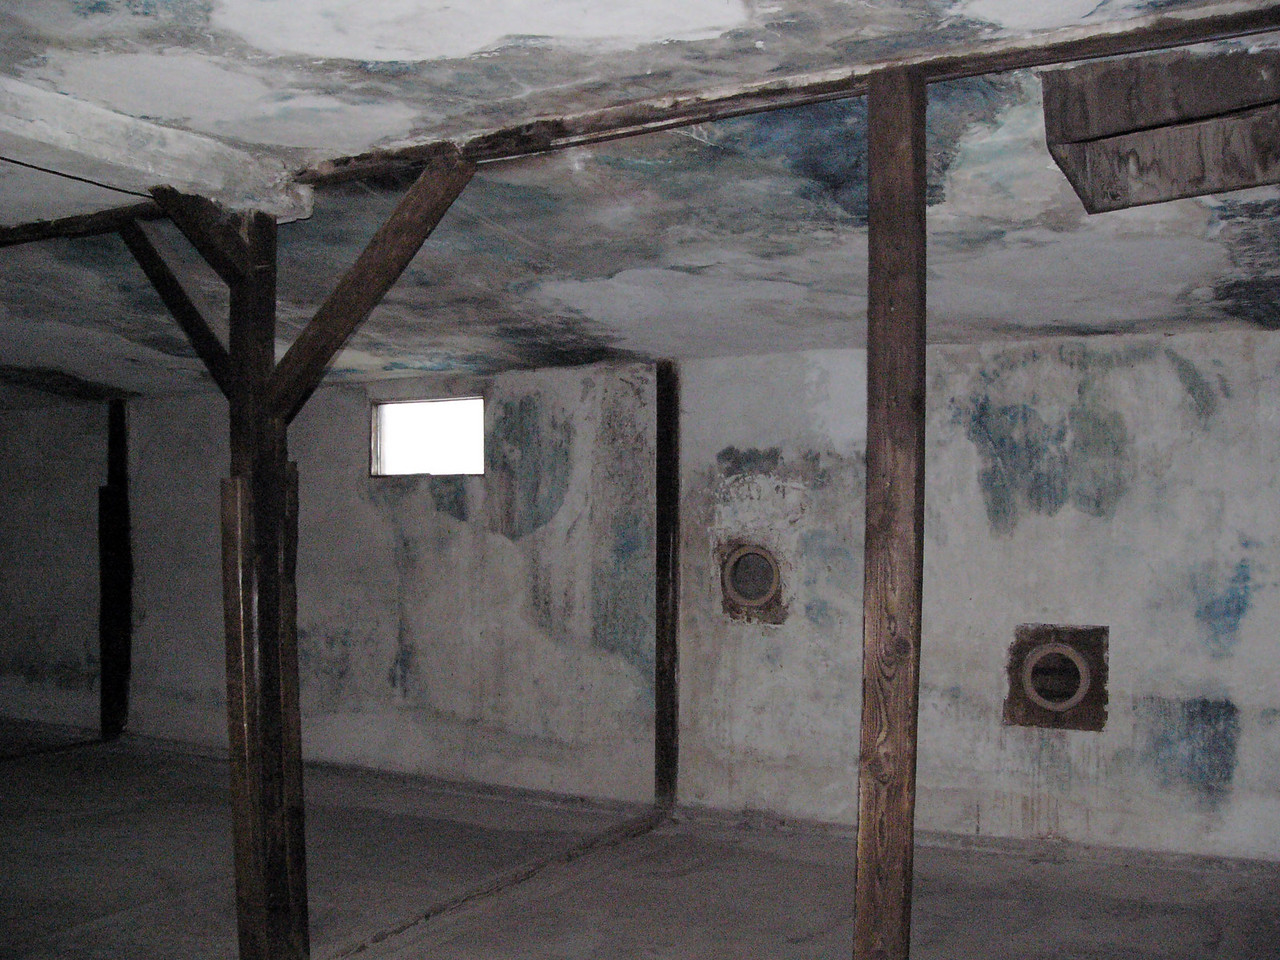 Gas chamber at Majdanek